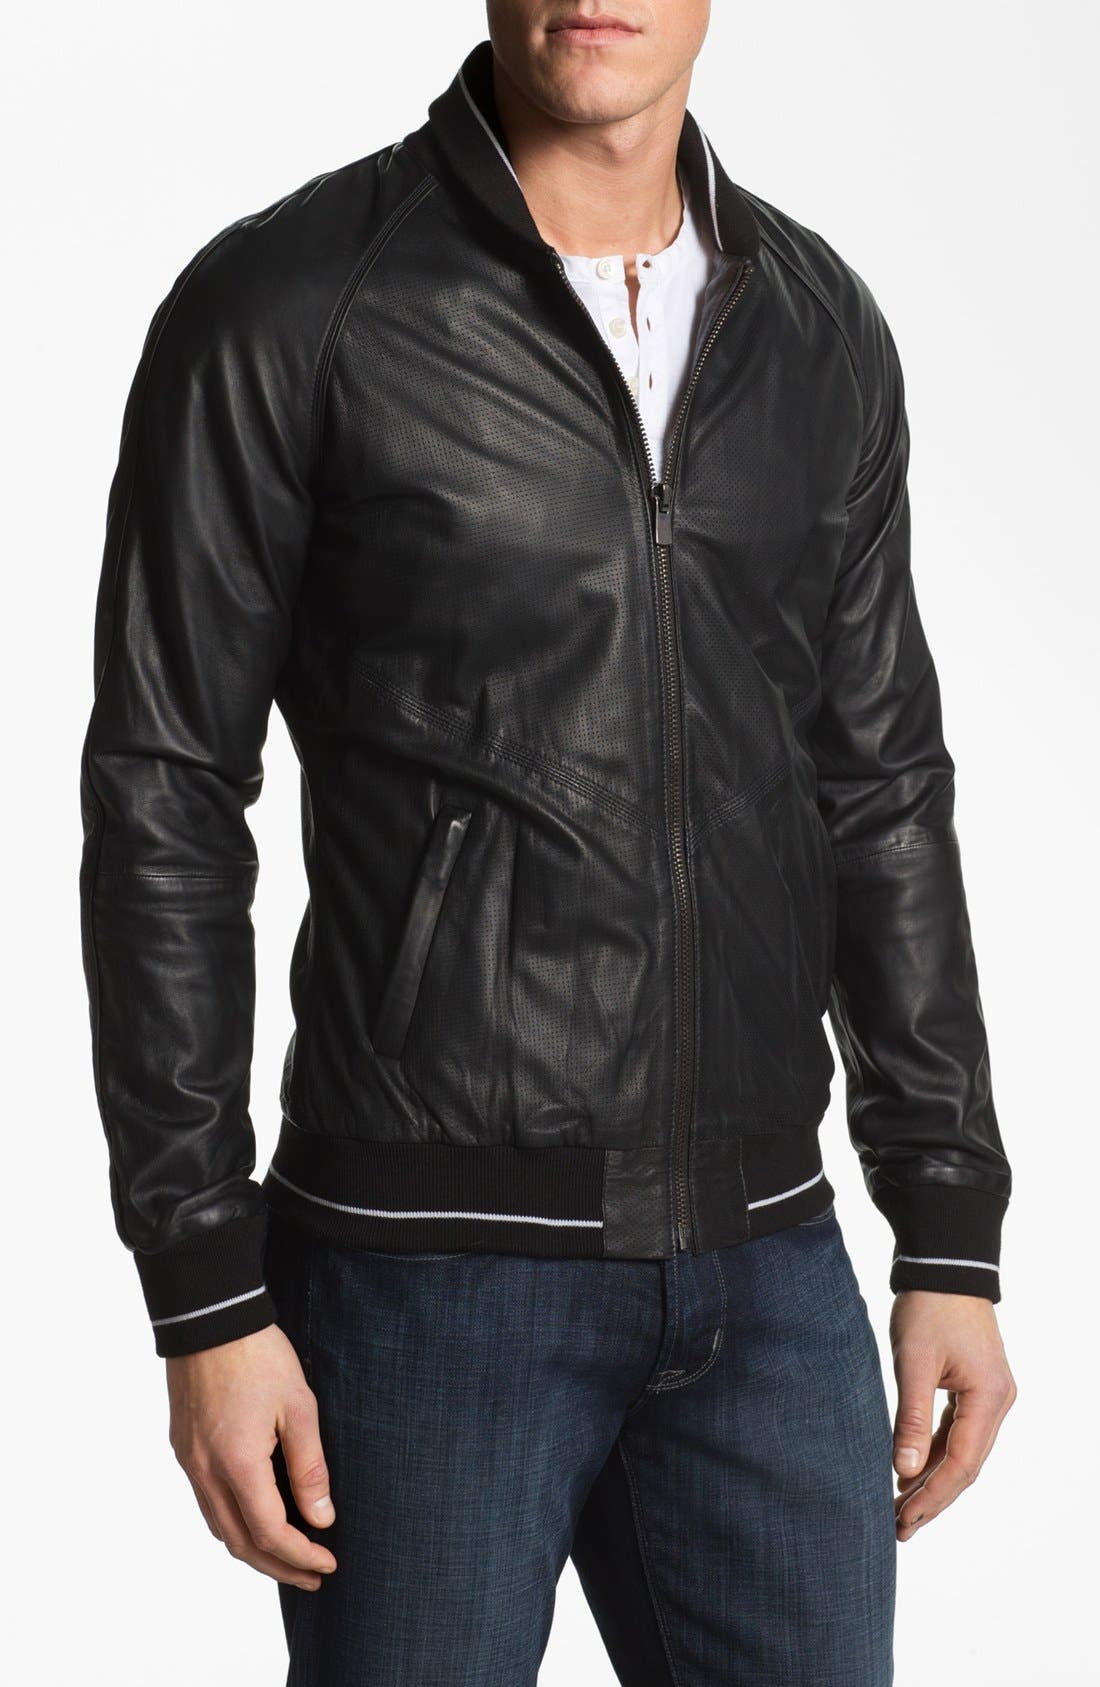 Alternate Image 1 Selected - La Marque Leather Baseball Jacket